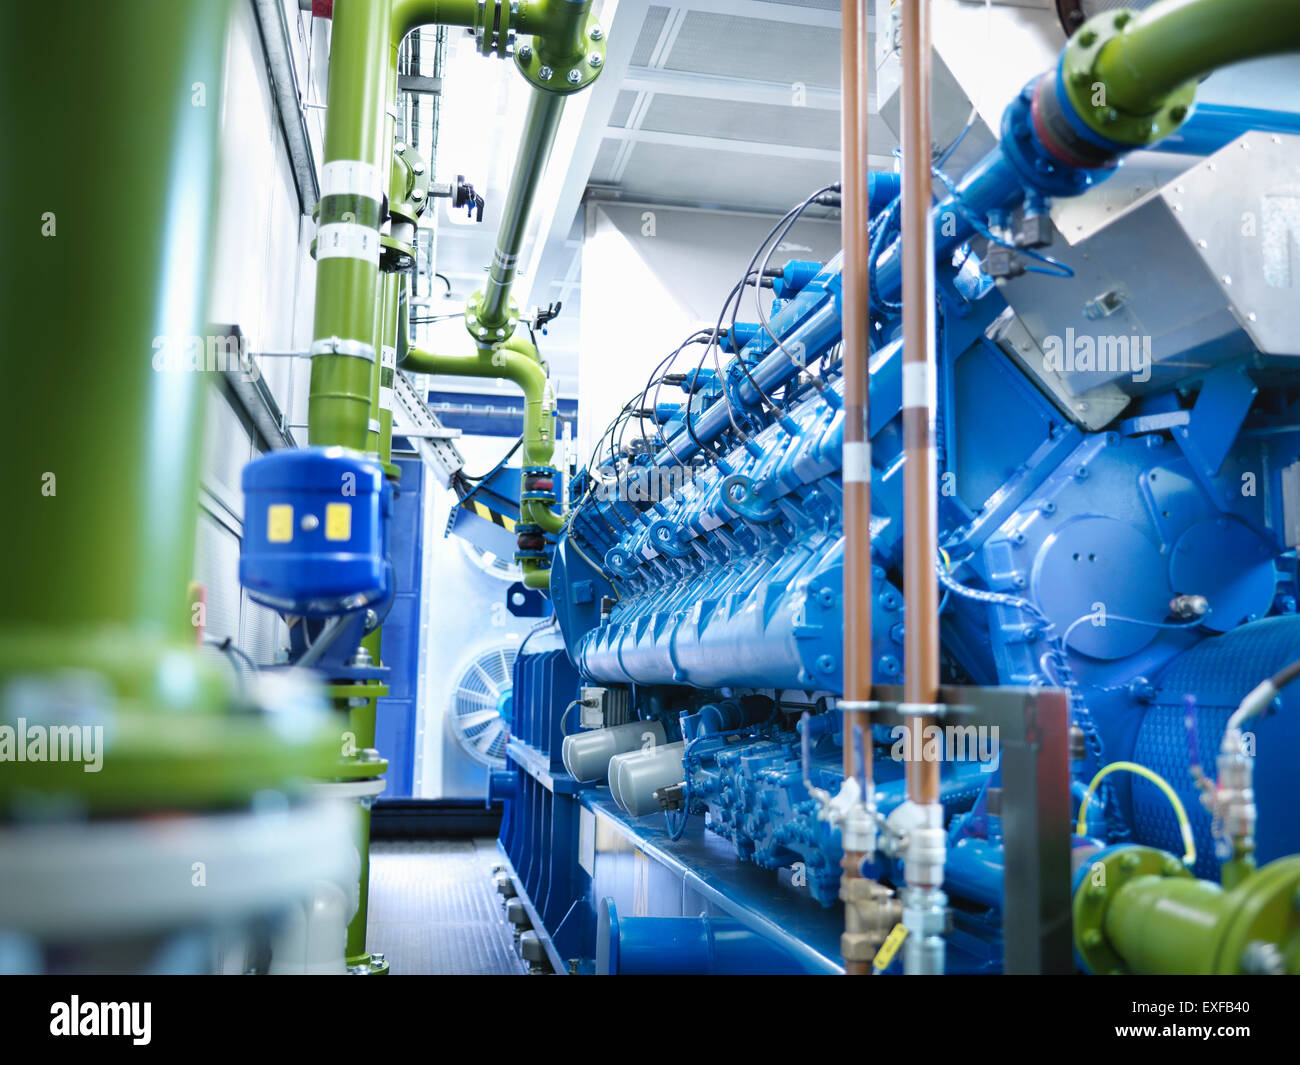 Gas fired generator in gas fired power station - Stock Image